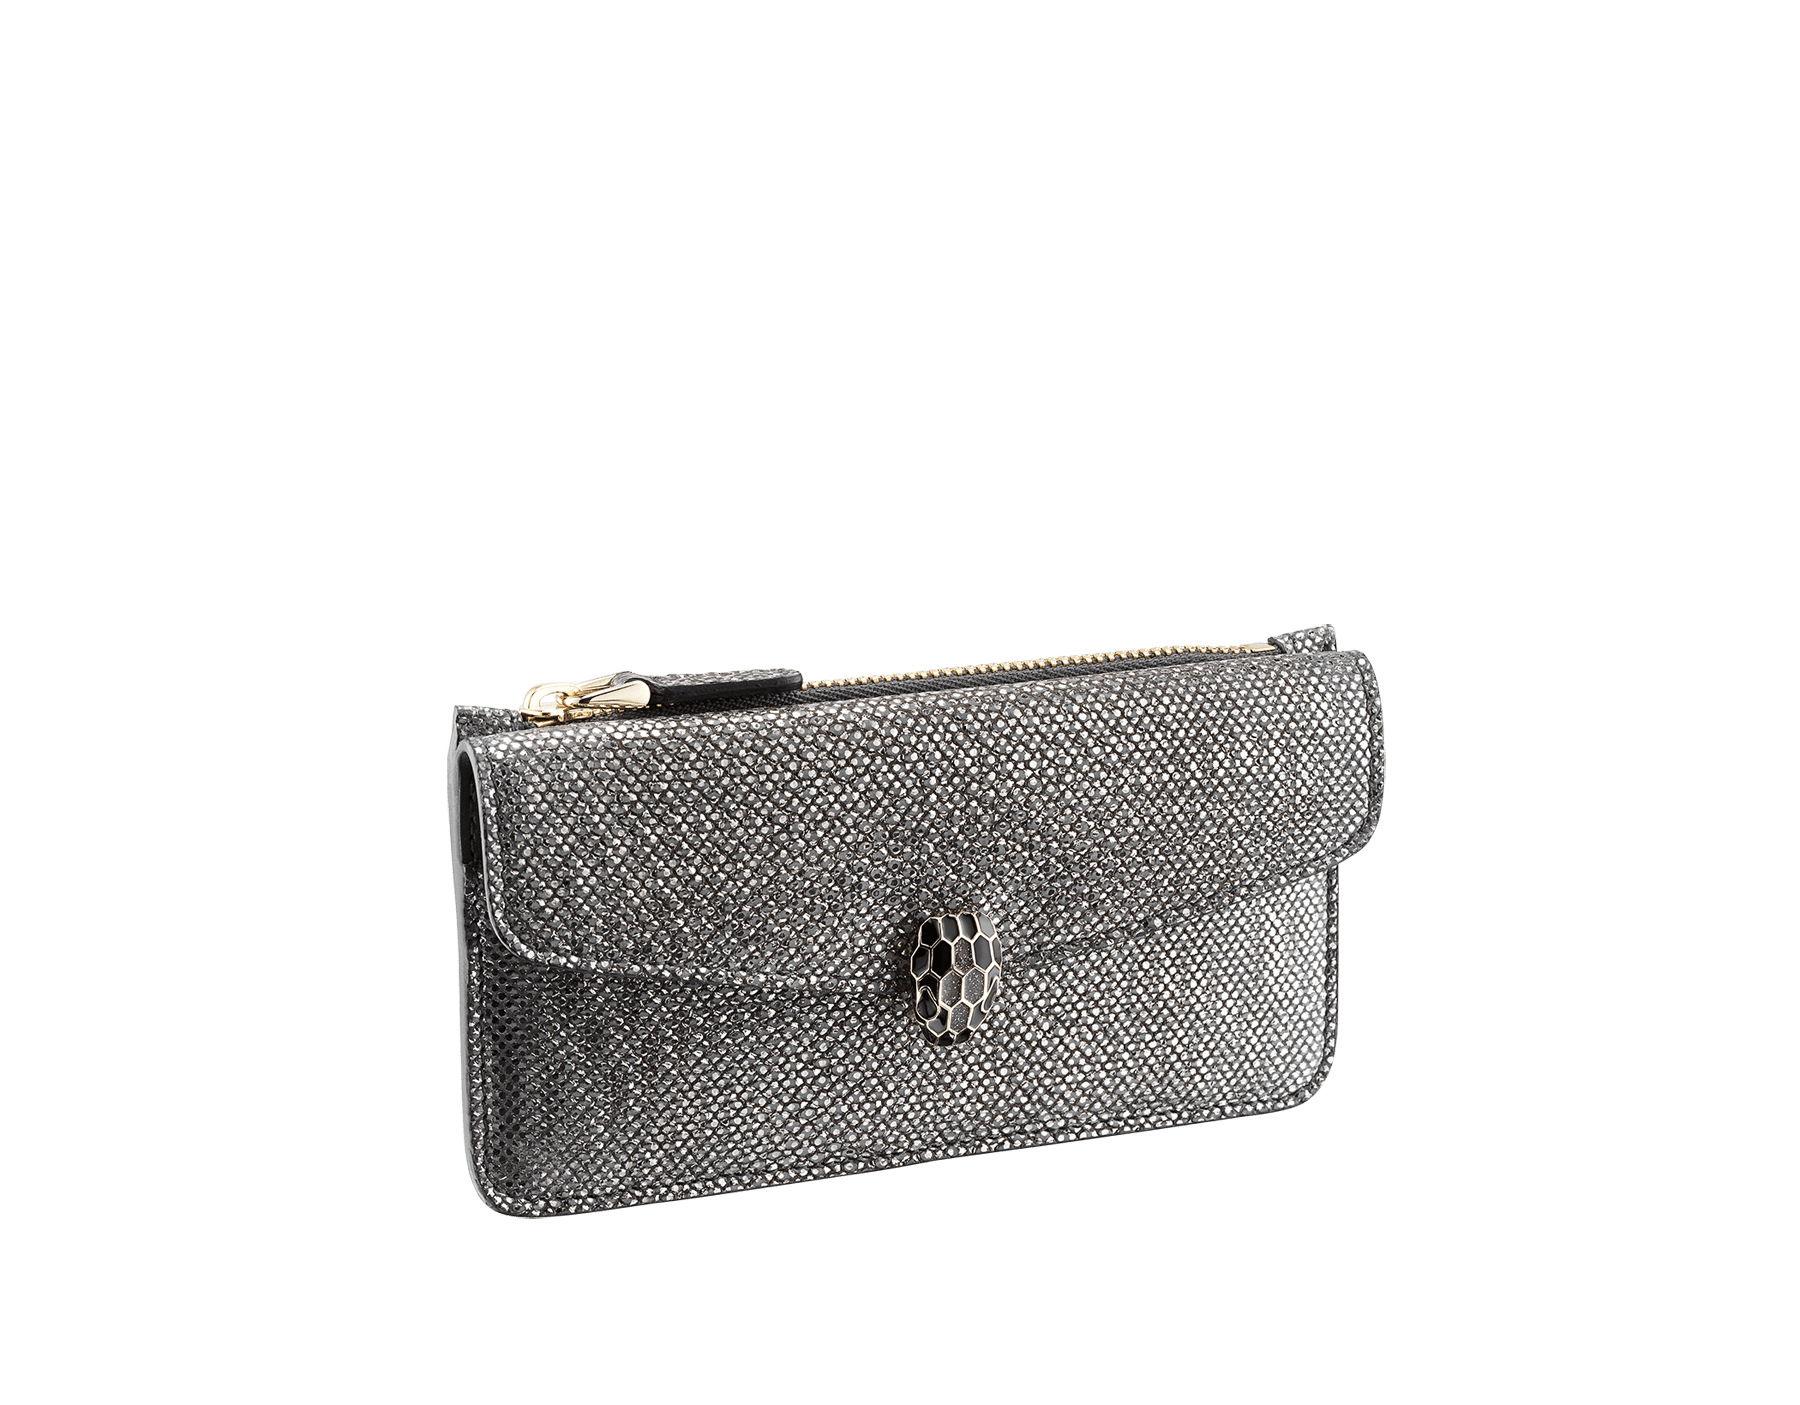 """""""Serpenti Forever"""" card holder in Charcoal Diamond grey metallic karung skin and Charcoal Diamond grey calf leather. Light gold plated brass iconic snakehead stud closure enameled in black and glitter Hawk's Eye grey, with black enamel eyes. 290146 image 1"""